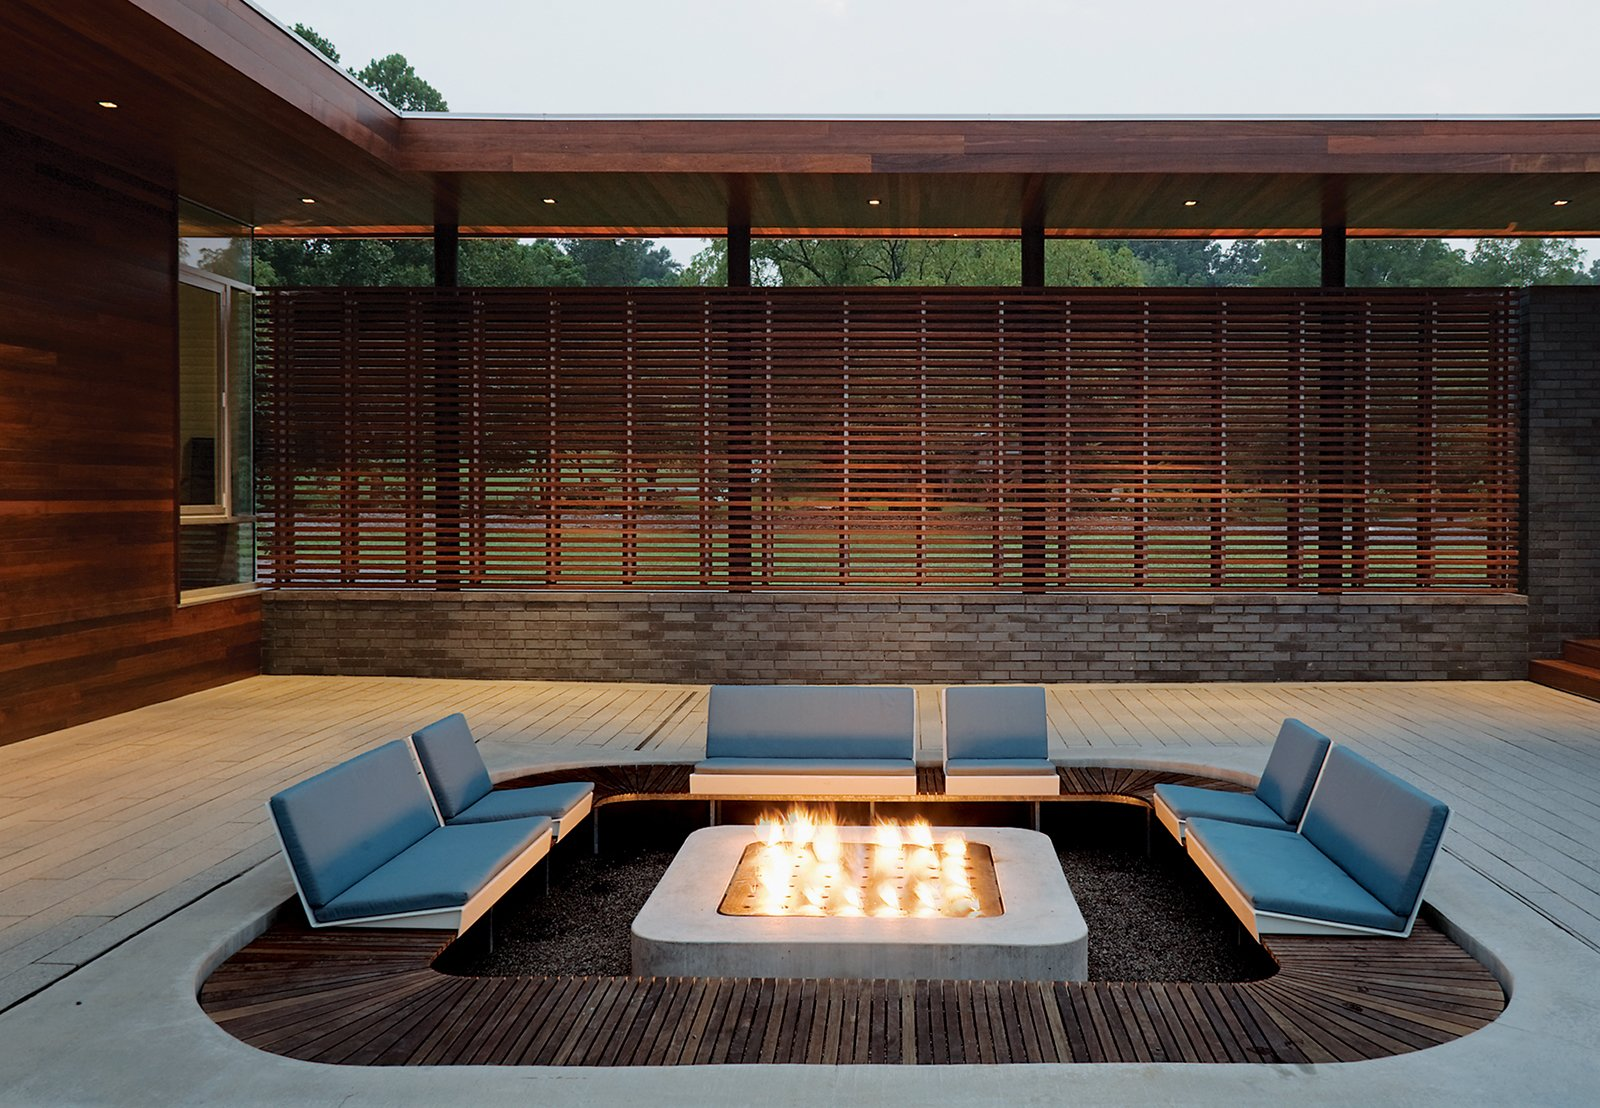 Outdoor, Back Yard, Concrete Patio, Porch, Deck, Wood Patio, Porch, Deck, Horizontal Fences, Wall, and Wood Fences, Wall Taking cues from a Japanese-influenced slatted screen applied to the house's facade, Hufft Projects applied a ring of ipe wood around the perimeter of this outdoor firepit.  Photo 11 of 11 in Take it Outside With These 11 Spring-Friendly Deck Spaces